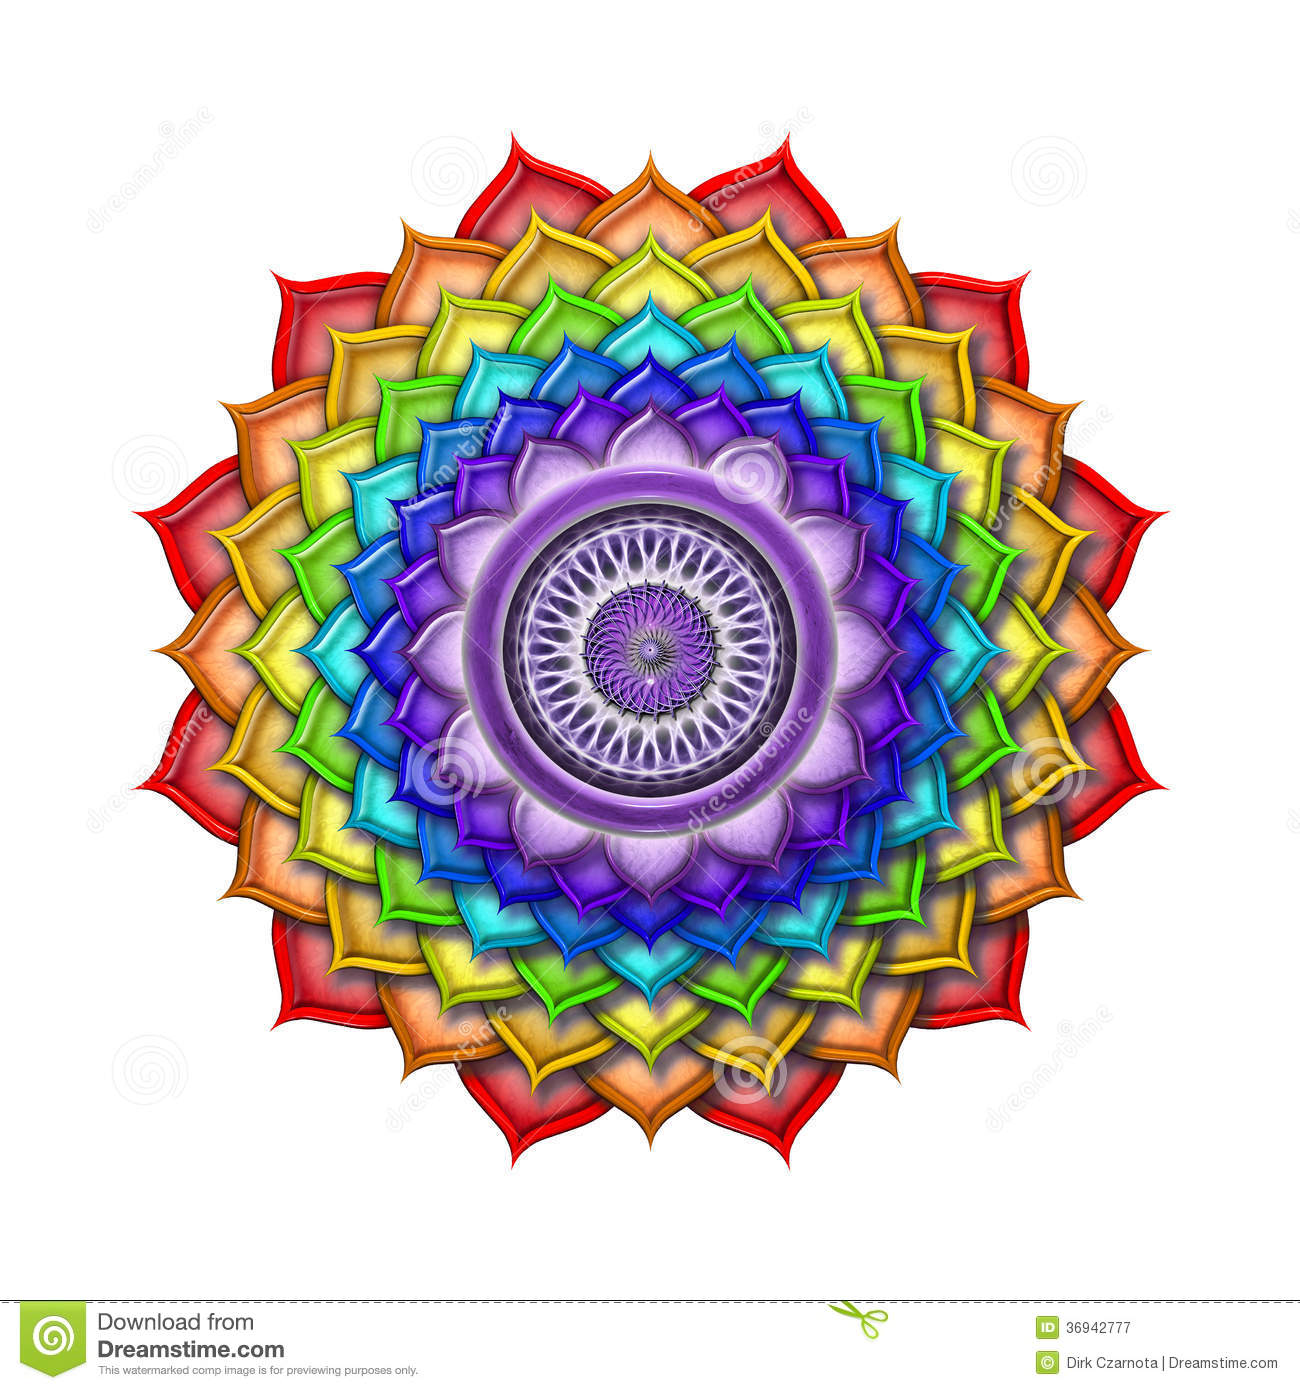 crown-chakra-rainbow-colors-isolated-illustration-36942777.jpg